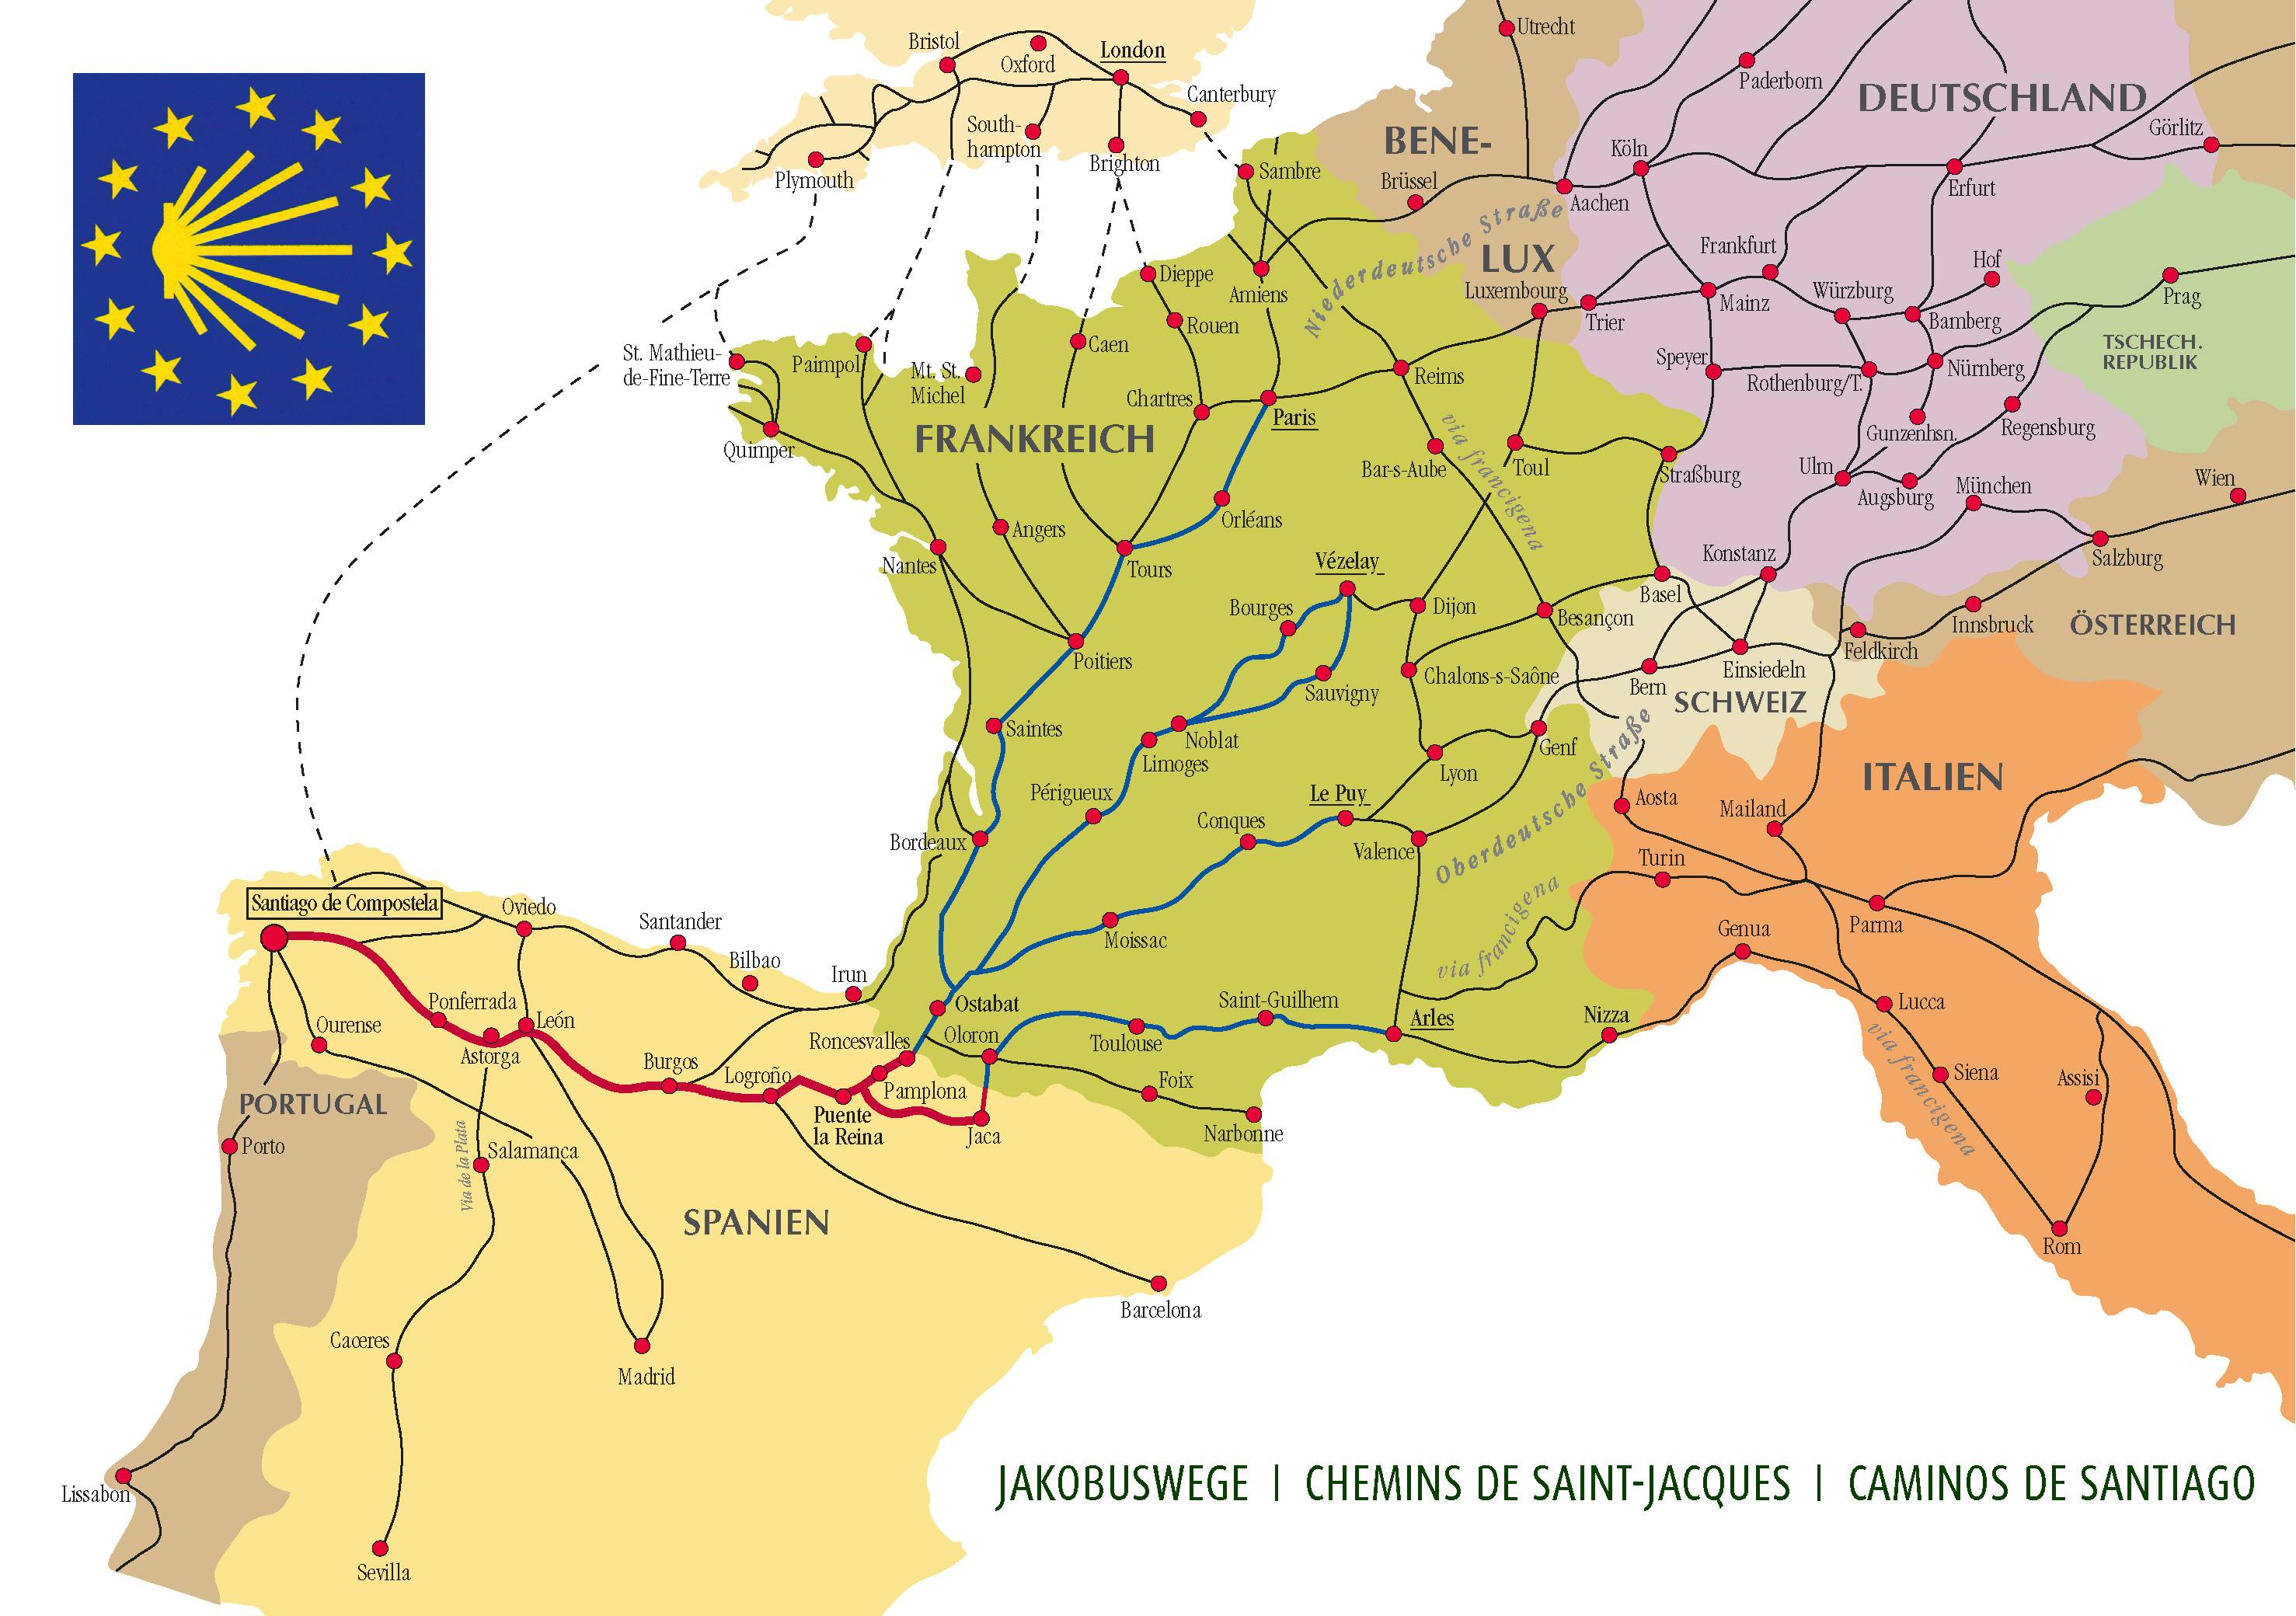 Camino Santiago Route Planner Are There Any Websites Or Resources For Planning Bicycle Routes